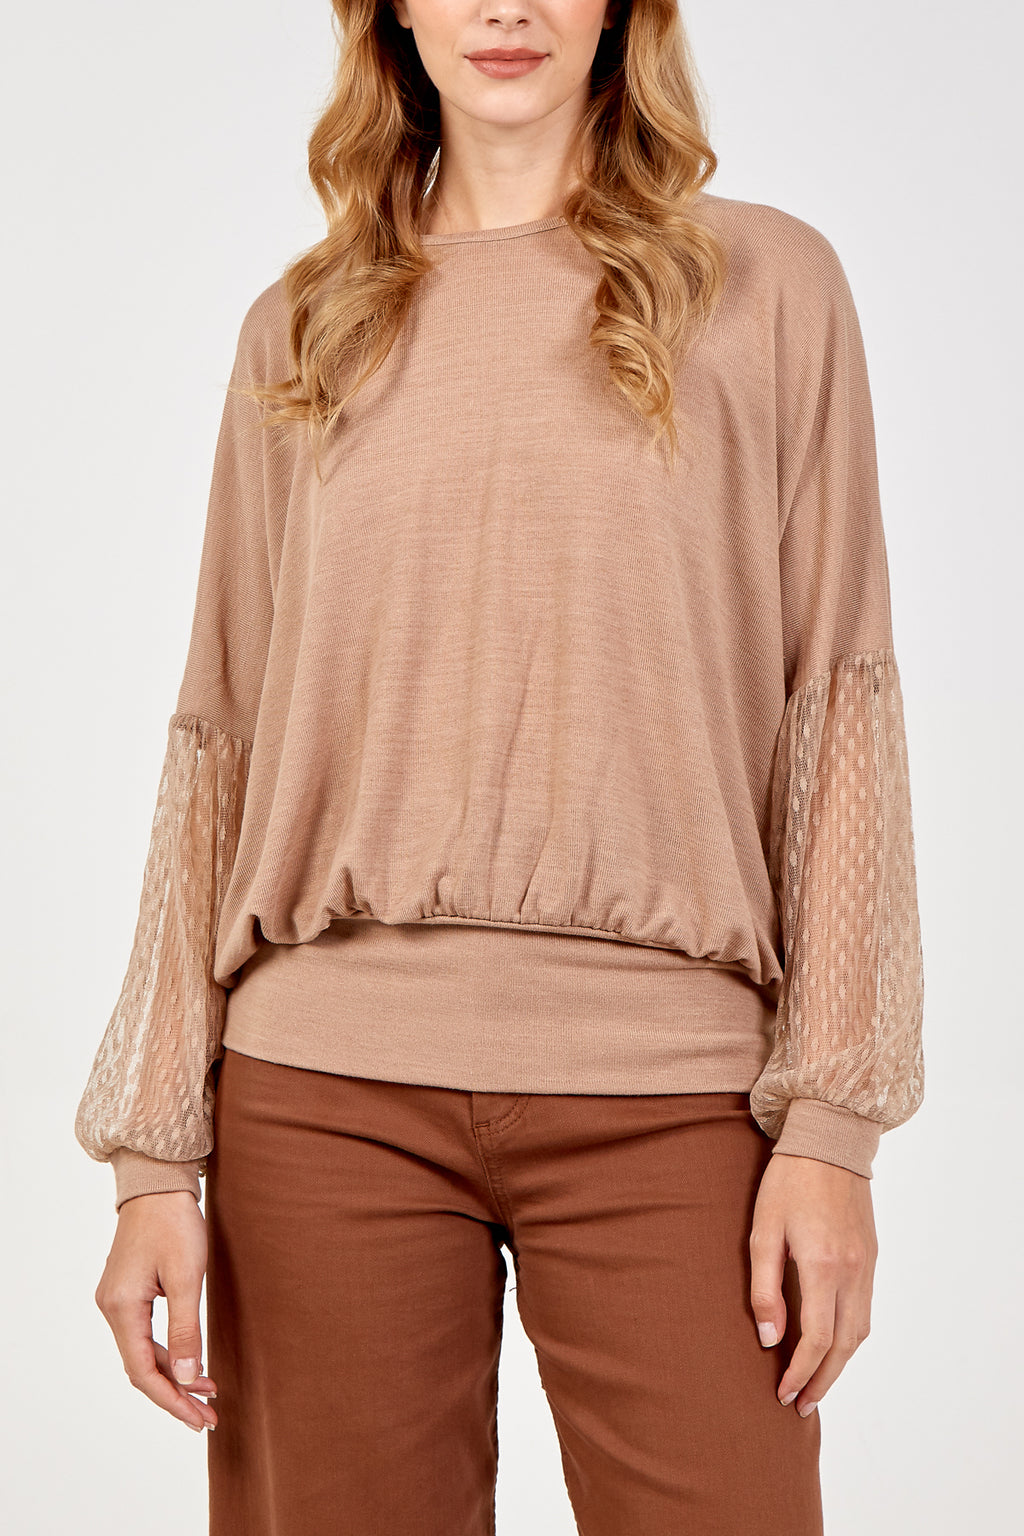 Mix Fabric Batwing Top